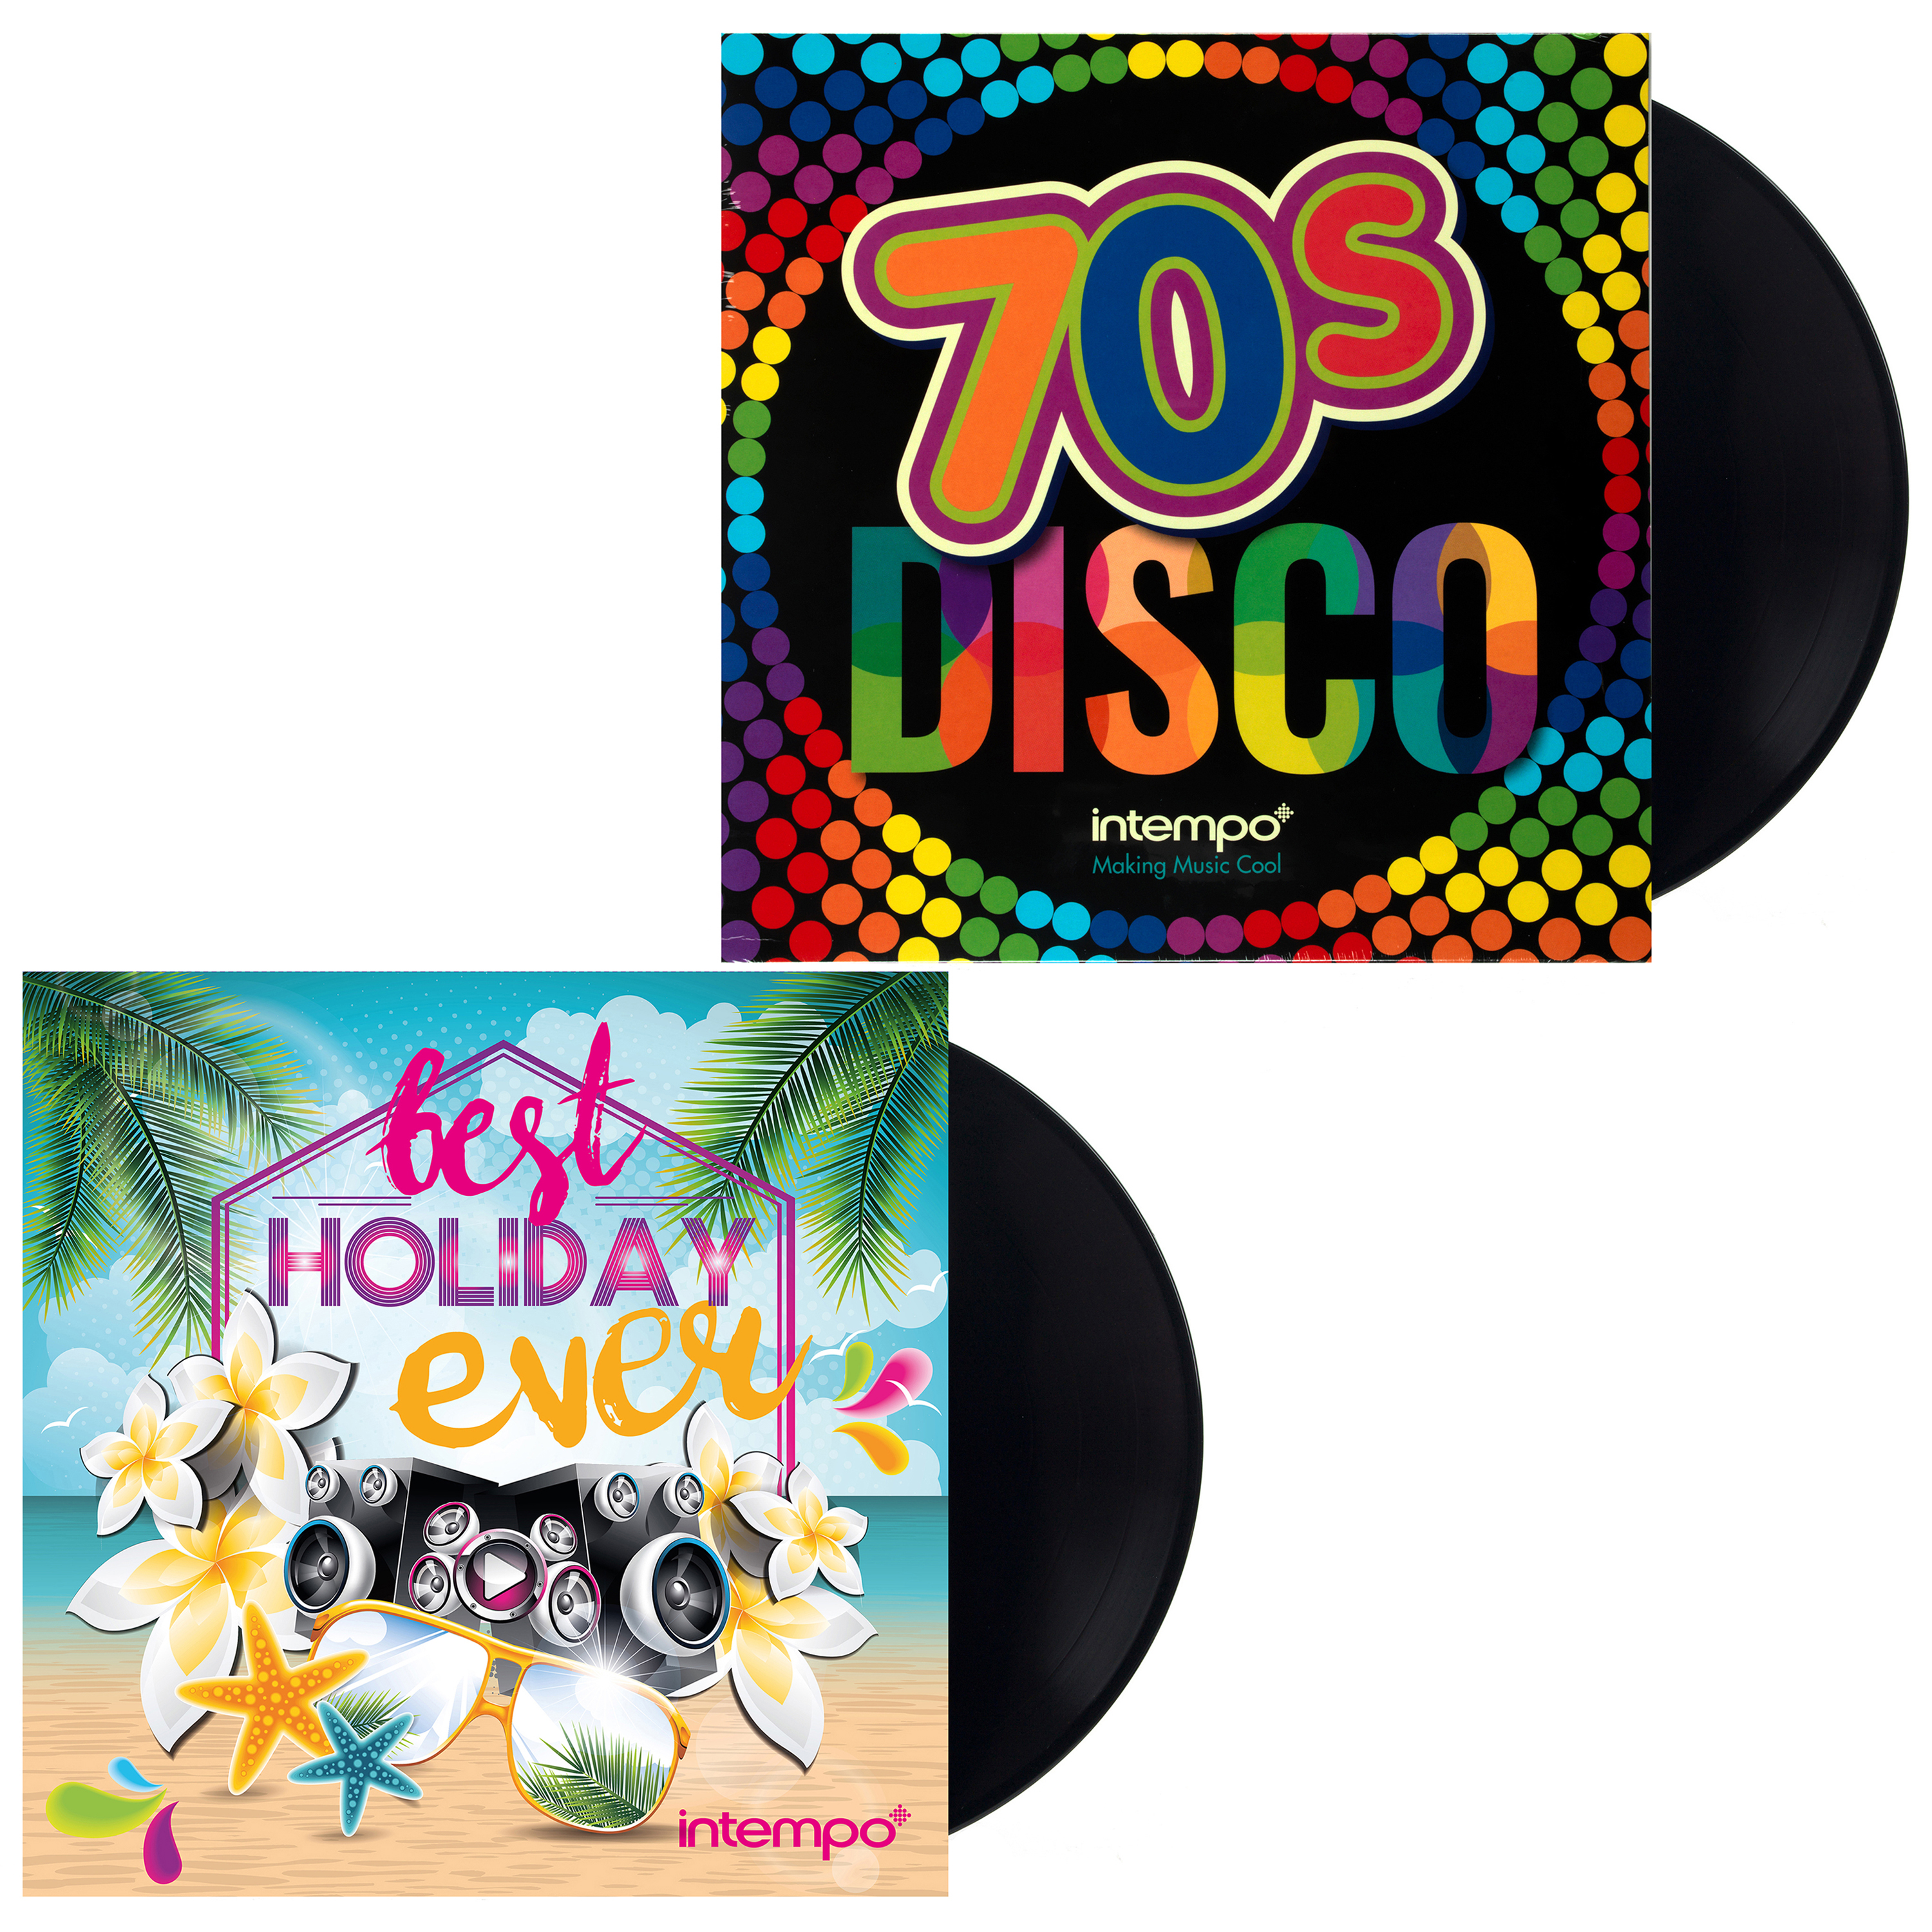 Best Holiday Ever and 70s Disco, Two Remastered 12 Inch Vinyl LP Bundle  COMBO-3454